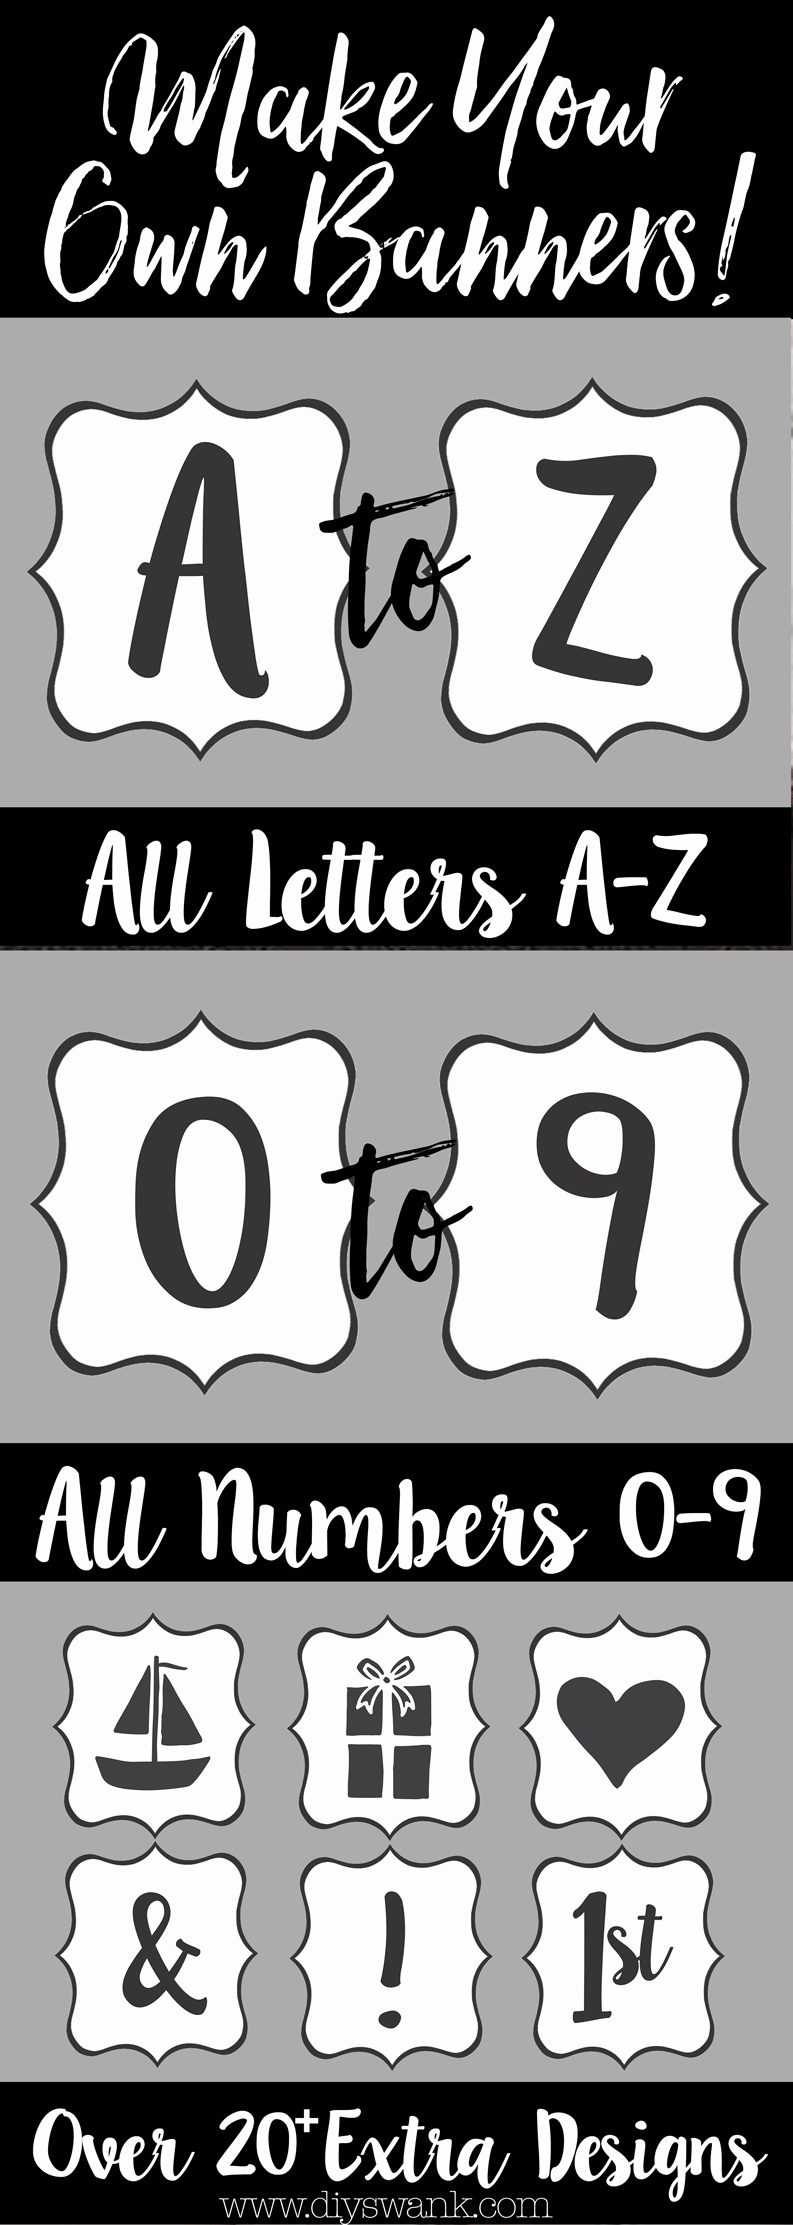 Free Printable Letters For Banners | Party Ideas | Printable Banner - Free Printable Letters Az